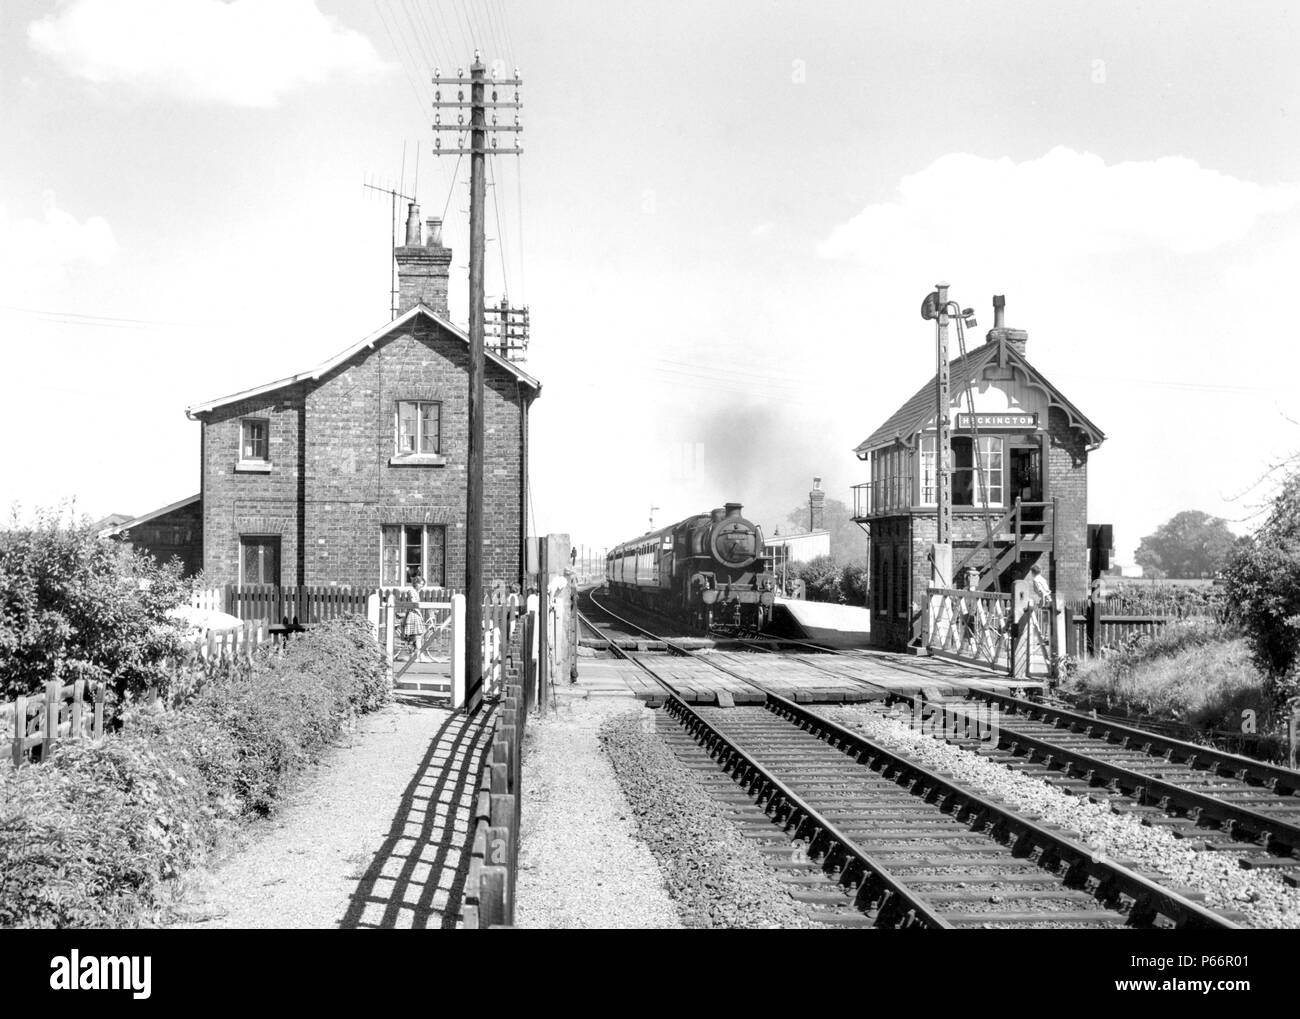 Heckington looking east with a typical GNR signal-box and somersault signal. The train is the 2.39 Skegness to Birmingham on July 27th 1963. It is wor - Stock Image